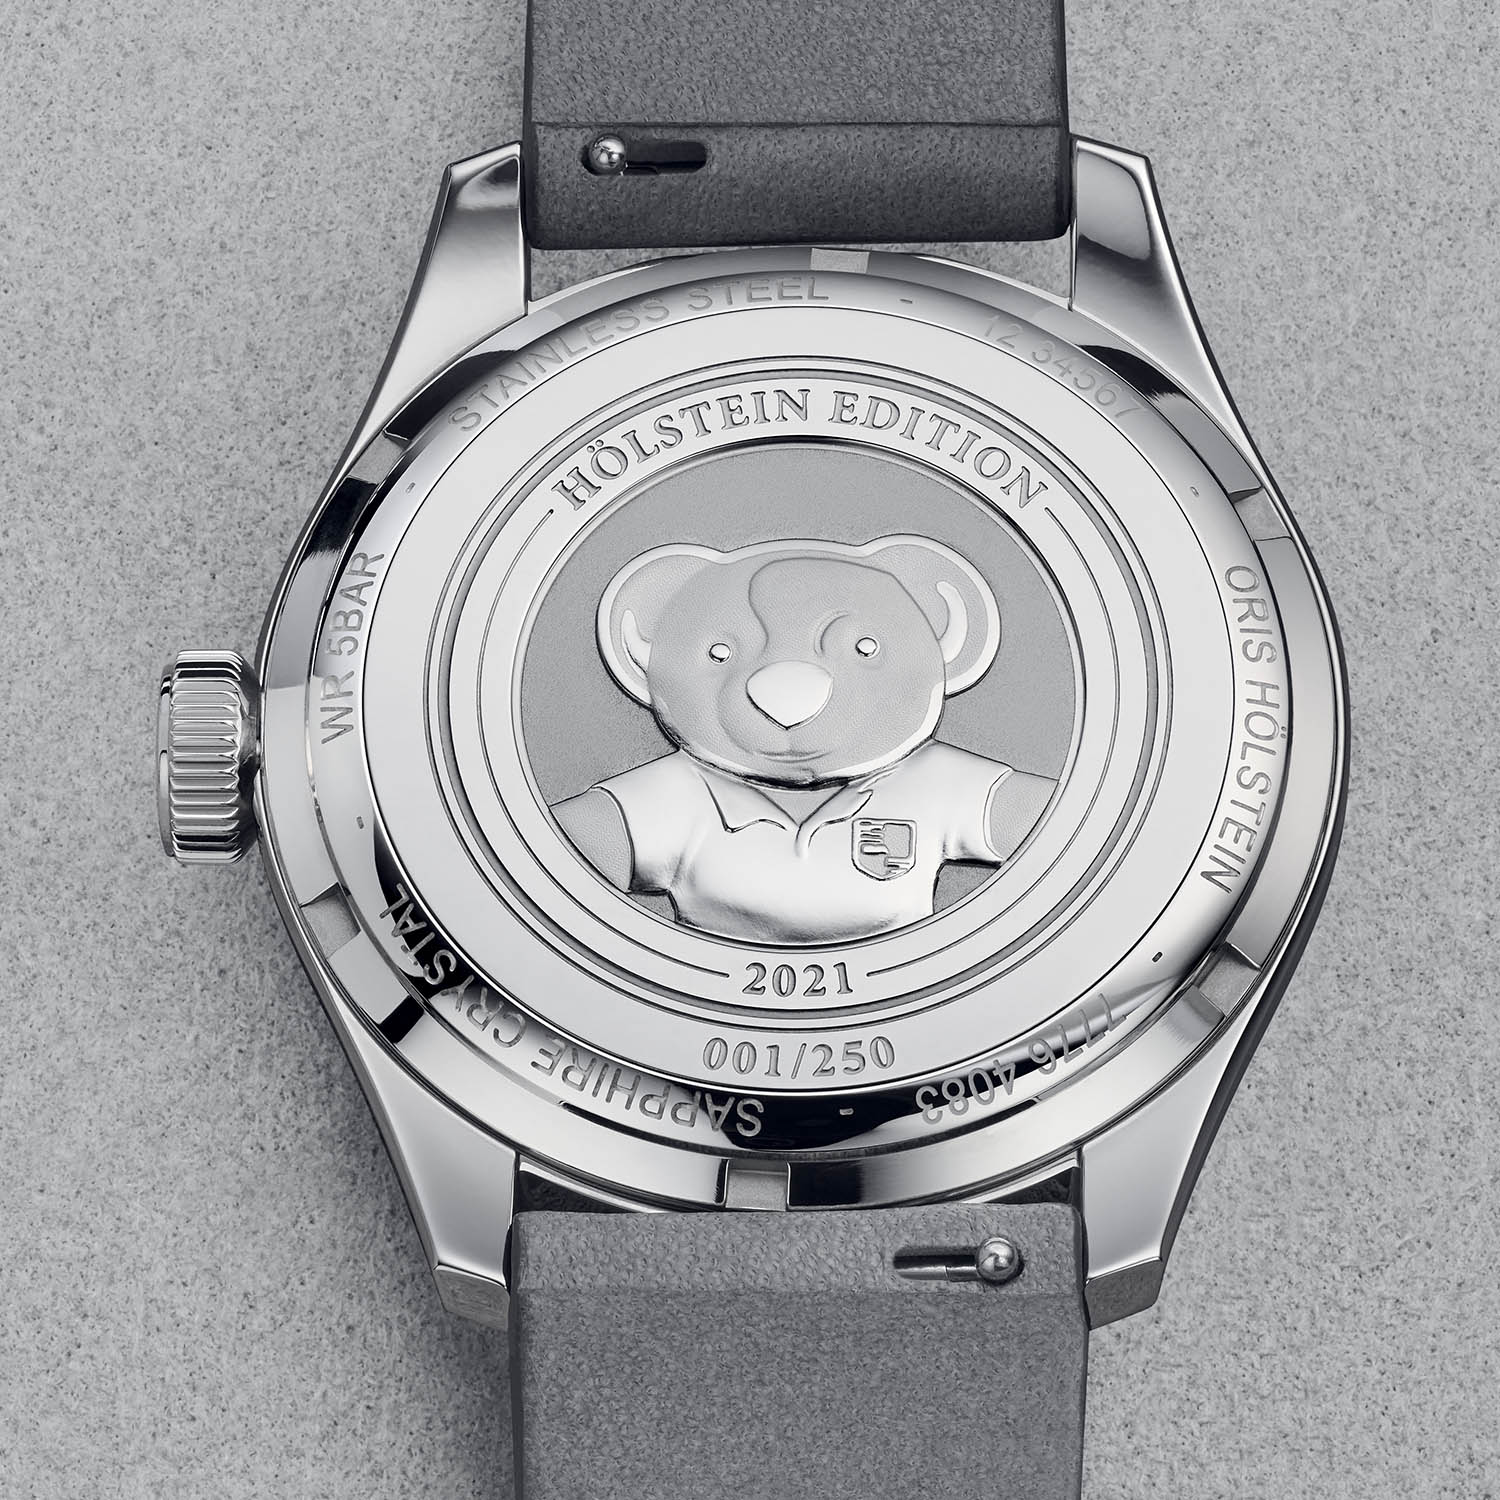 Oris Holstein Edition 2021 Limited Edition In-House Calibre 403 - 403 7776 4083-Set